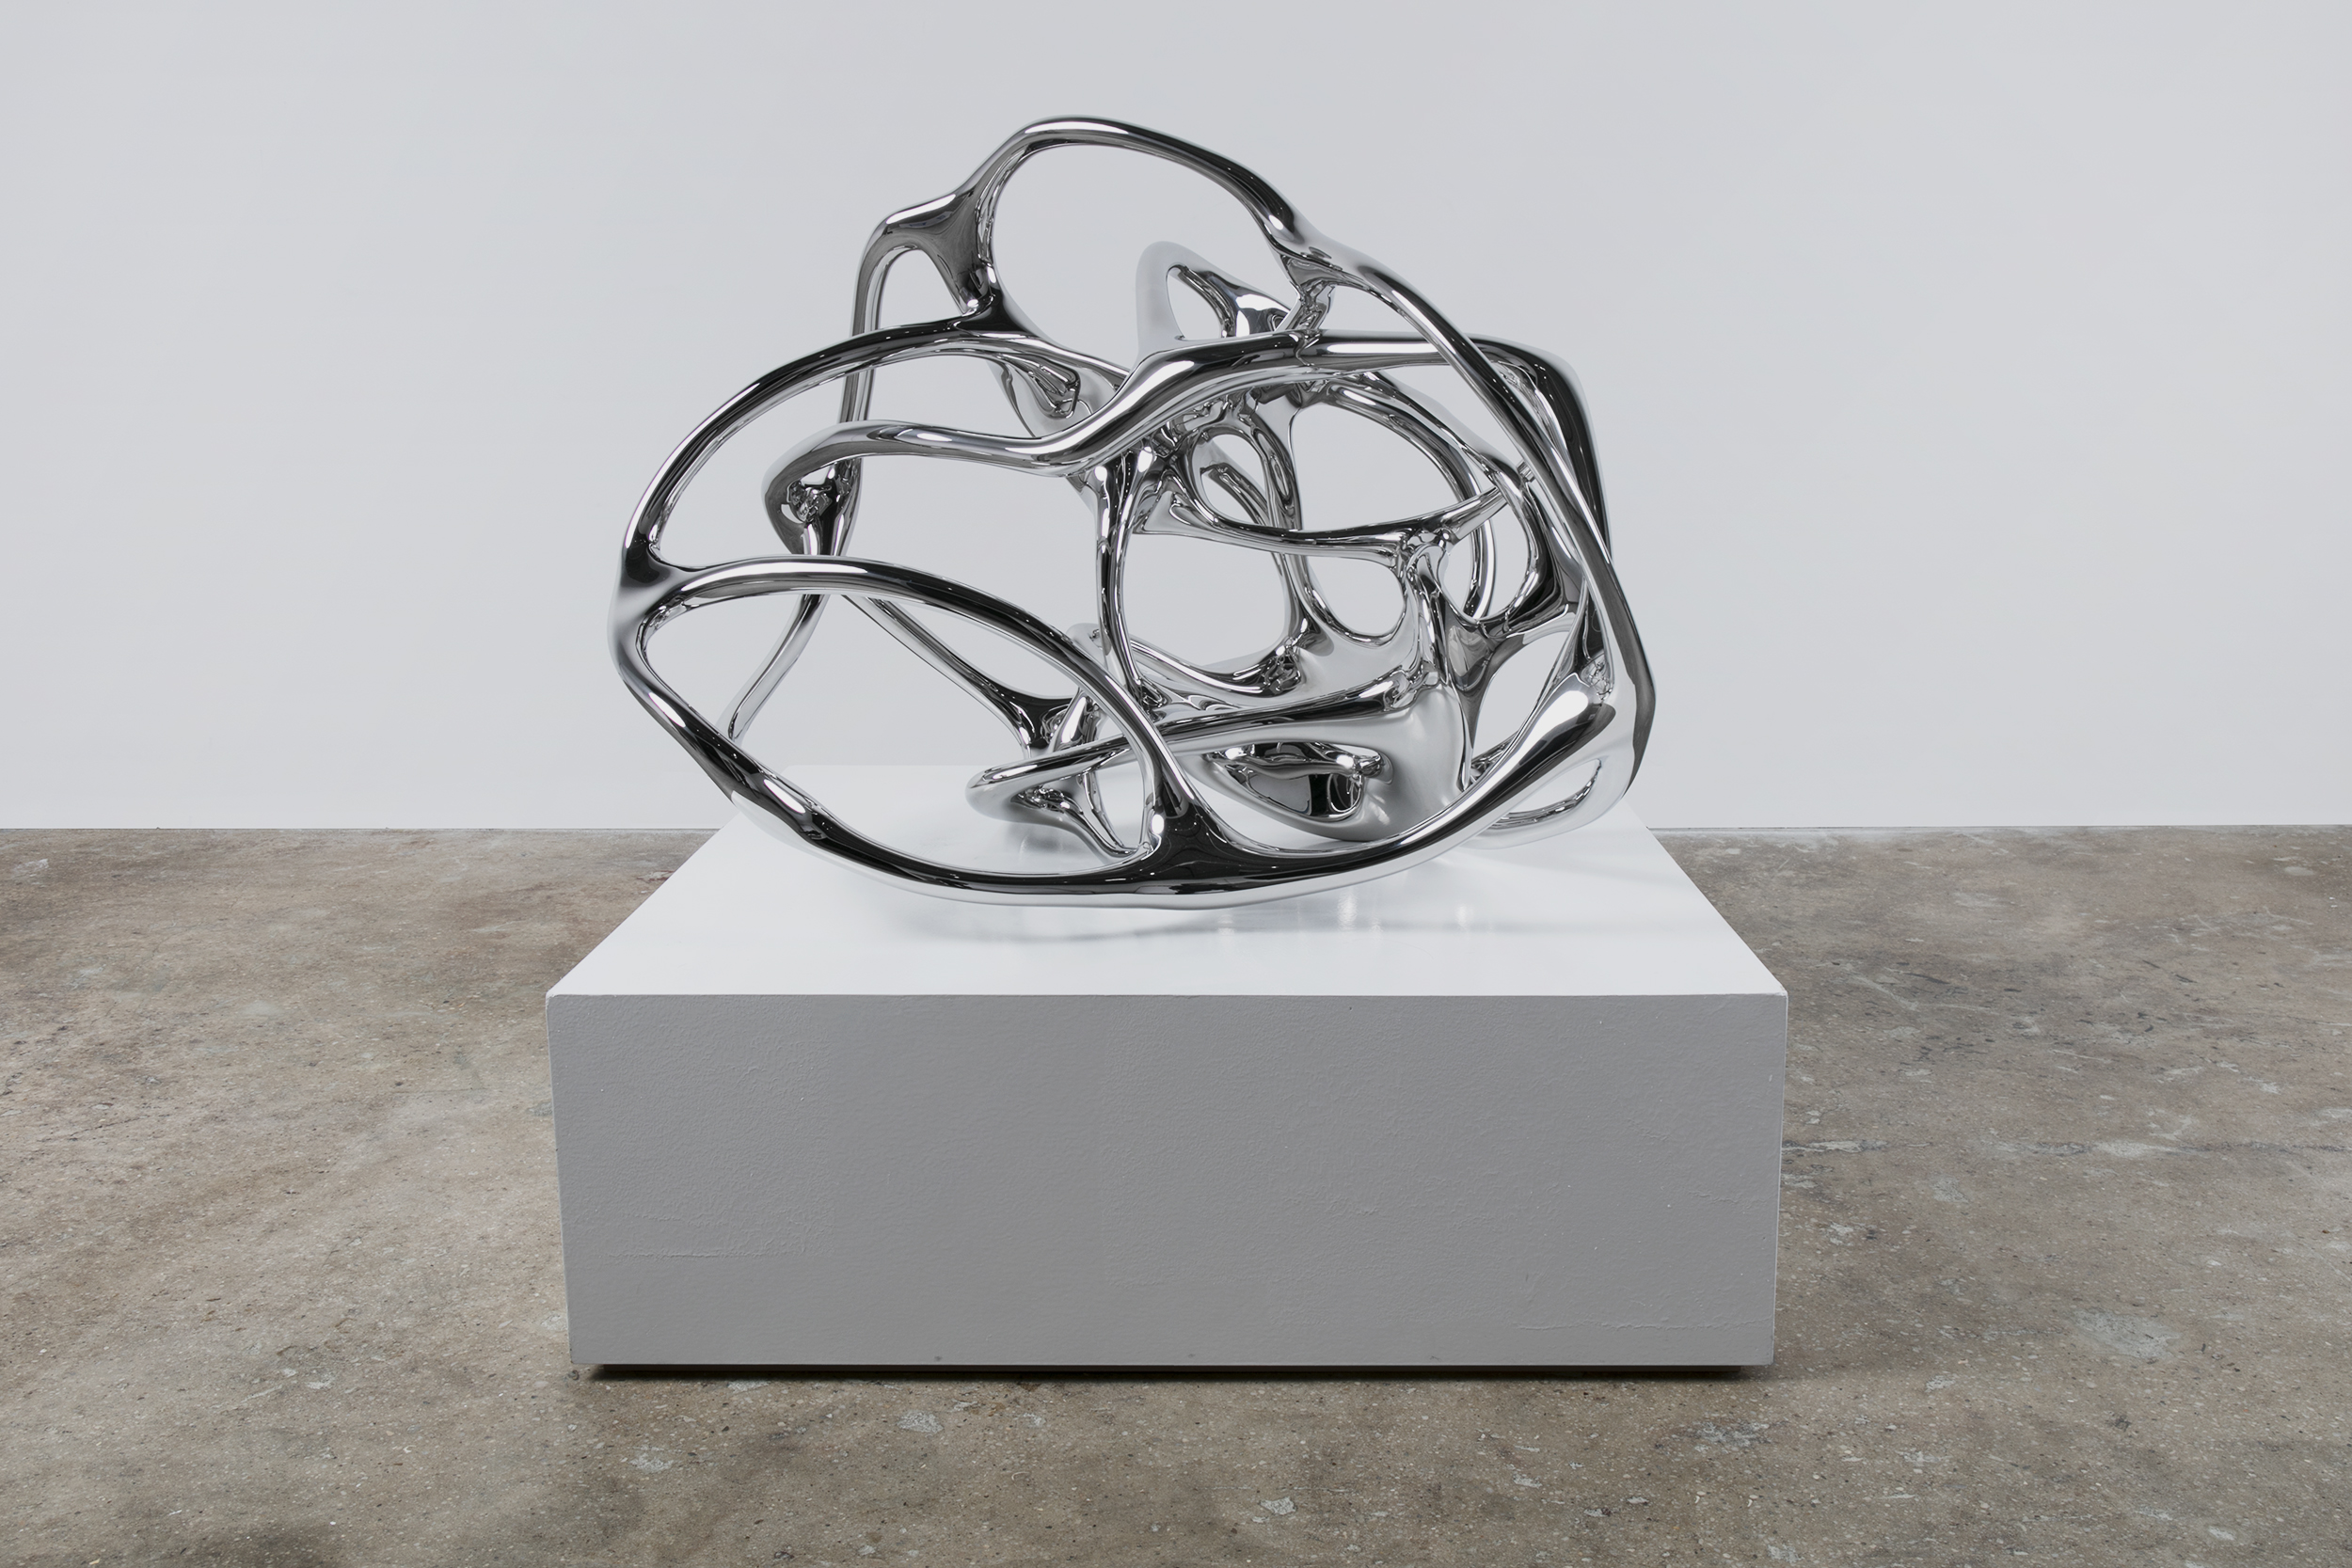 Saint Clair Cemin, Soma, 2017, stainless steel, 28 x, 40 x 40 inches, 71.1 x 101.6 x 101.6 cm, Edition of 3 + 1 AP. Photo: Diego Flores. Courtesy the artist and Paul Kasmin Gallery